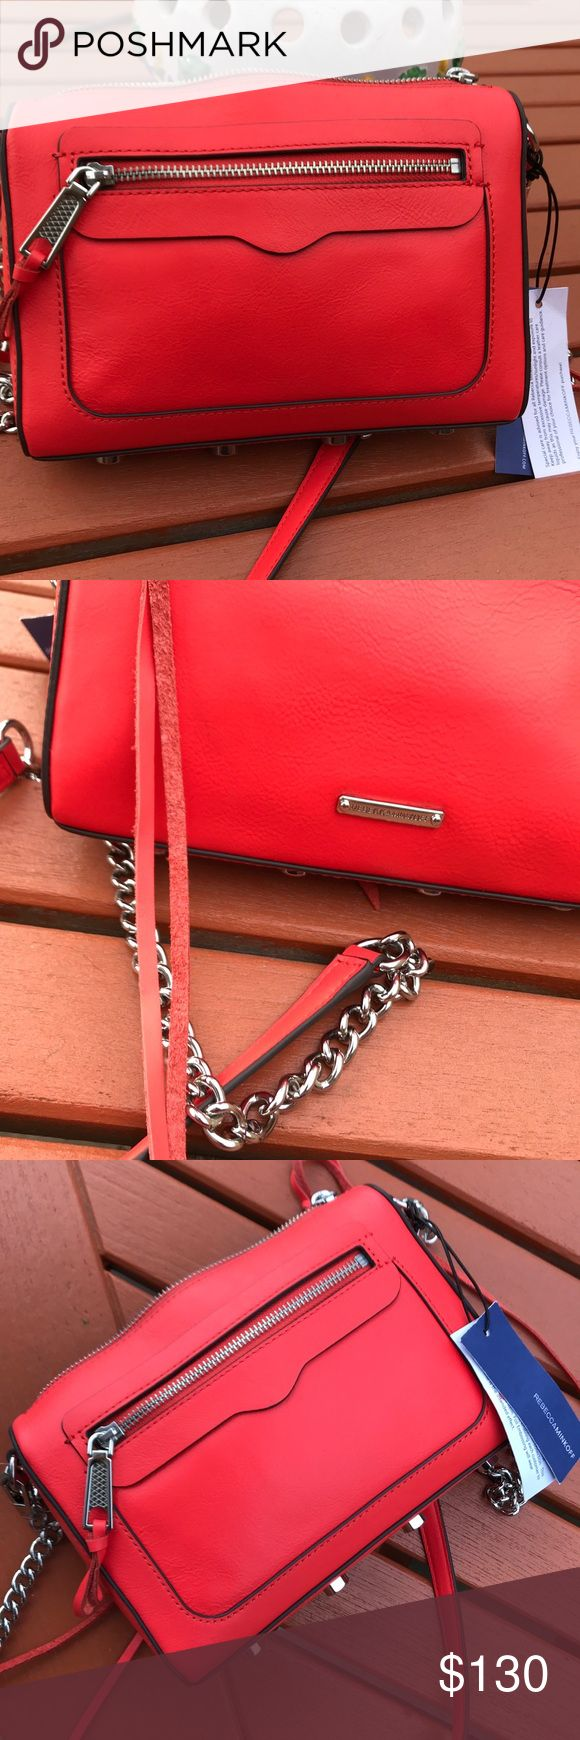 NWT Rebecca Minkoff Avery Crossbody Rebecca Minkoff   Blood orange color   Brand New with Tags   Comes with extra leather straps and booklet   Impecable Rebecca Minkoff Bags Crossbody Bags